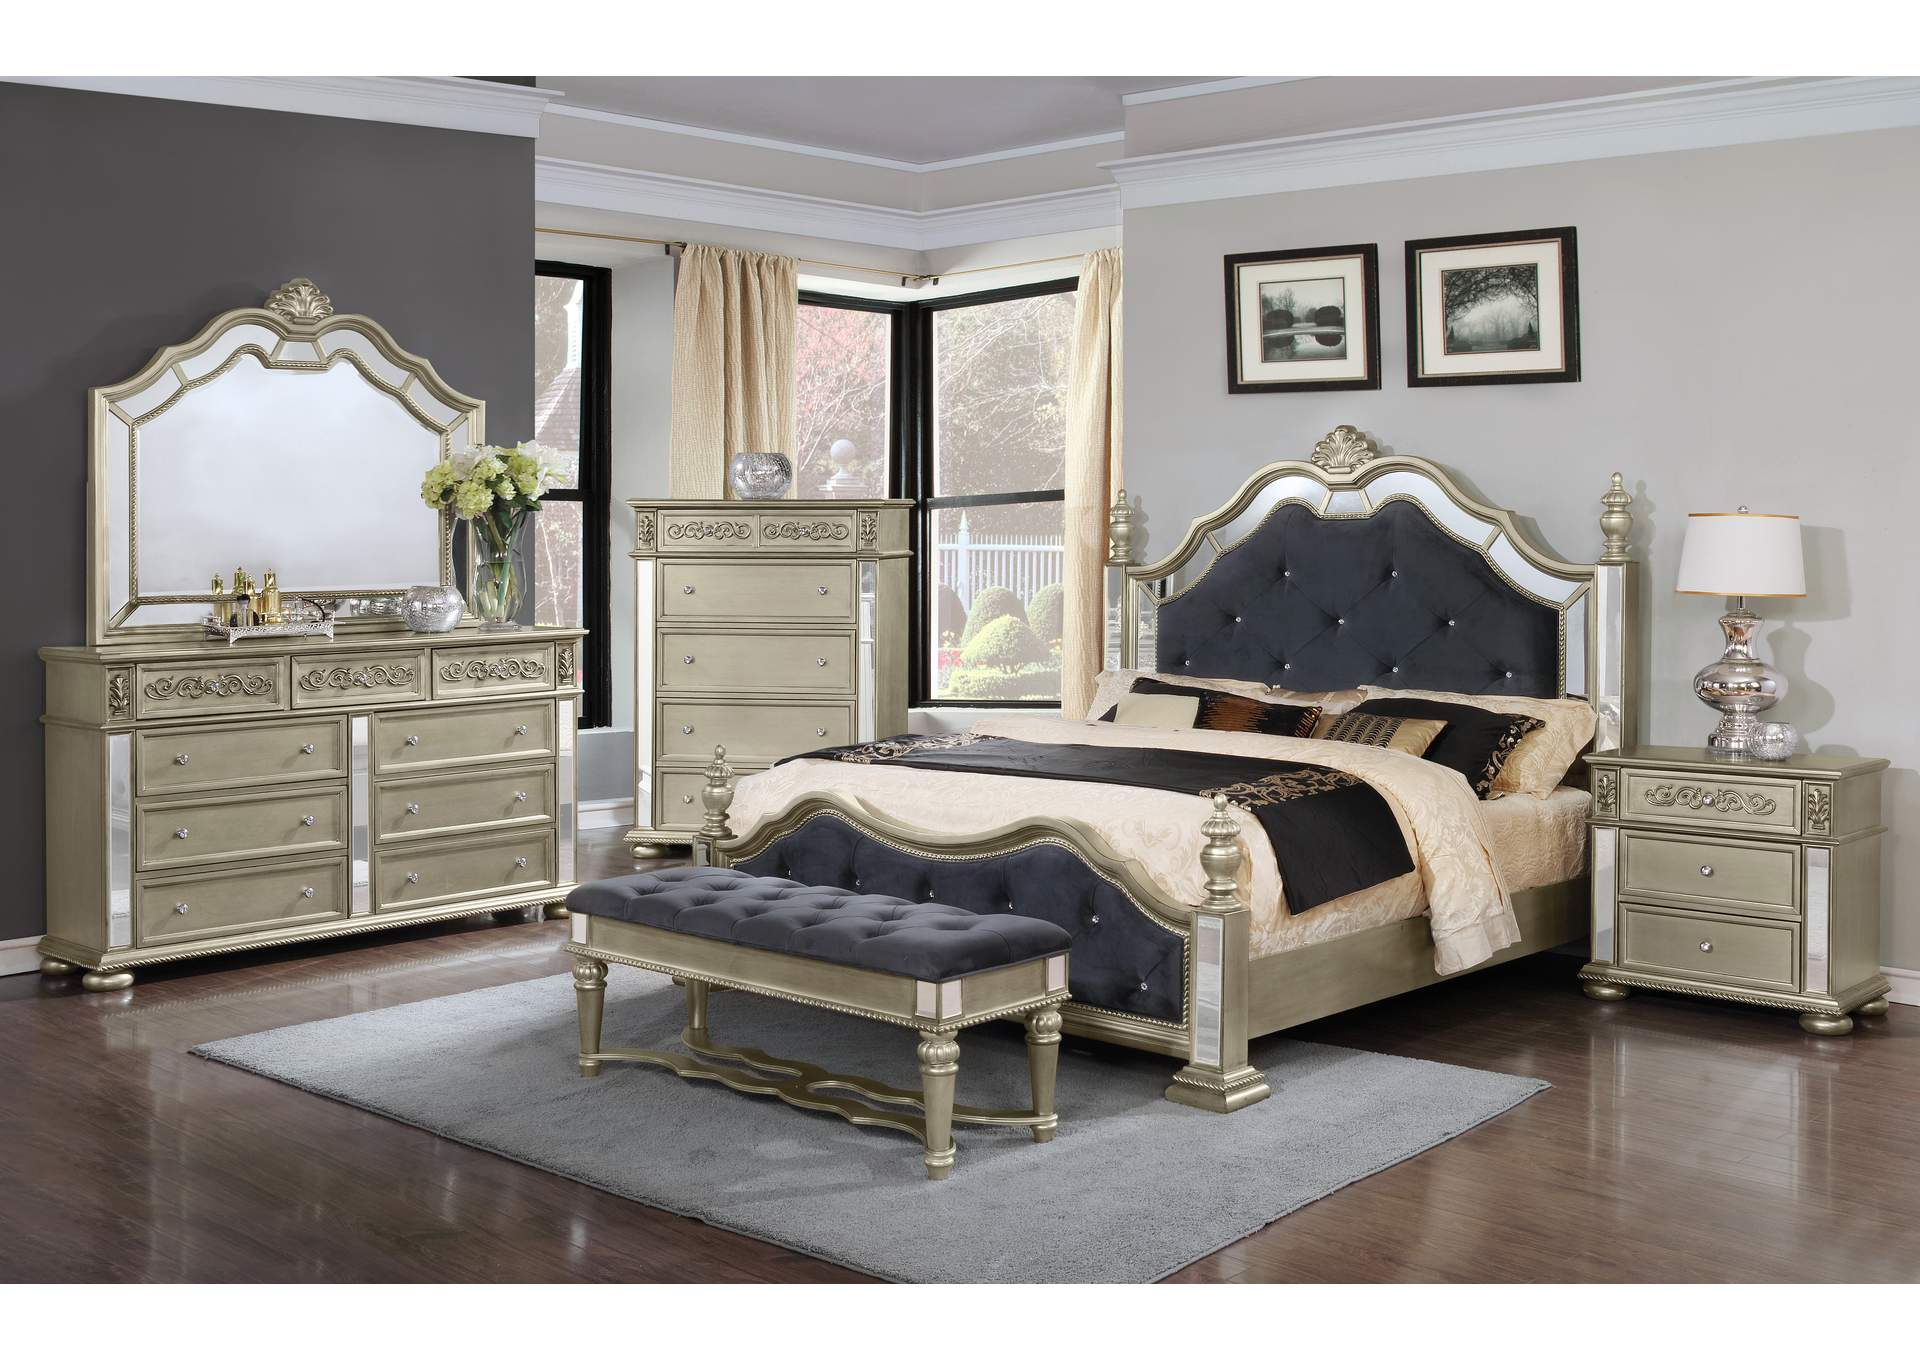 Silver Panel Queen 6 Piece Bedroom Set W/ 2 Nightstand, Chest, Dresser & Mirror,Global Trading